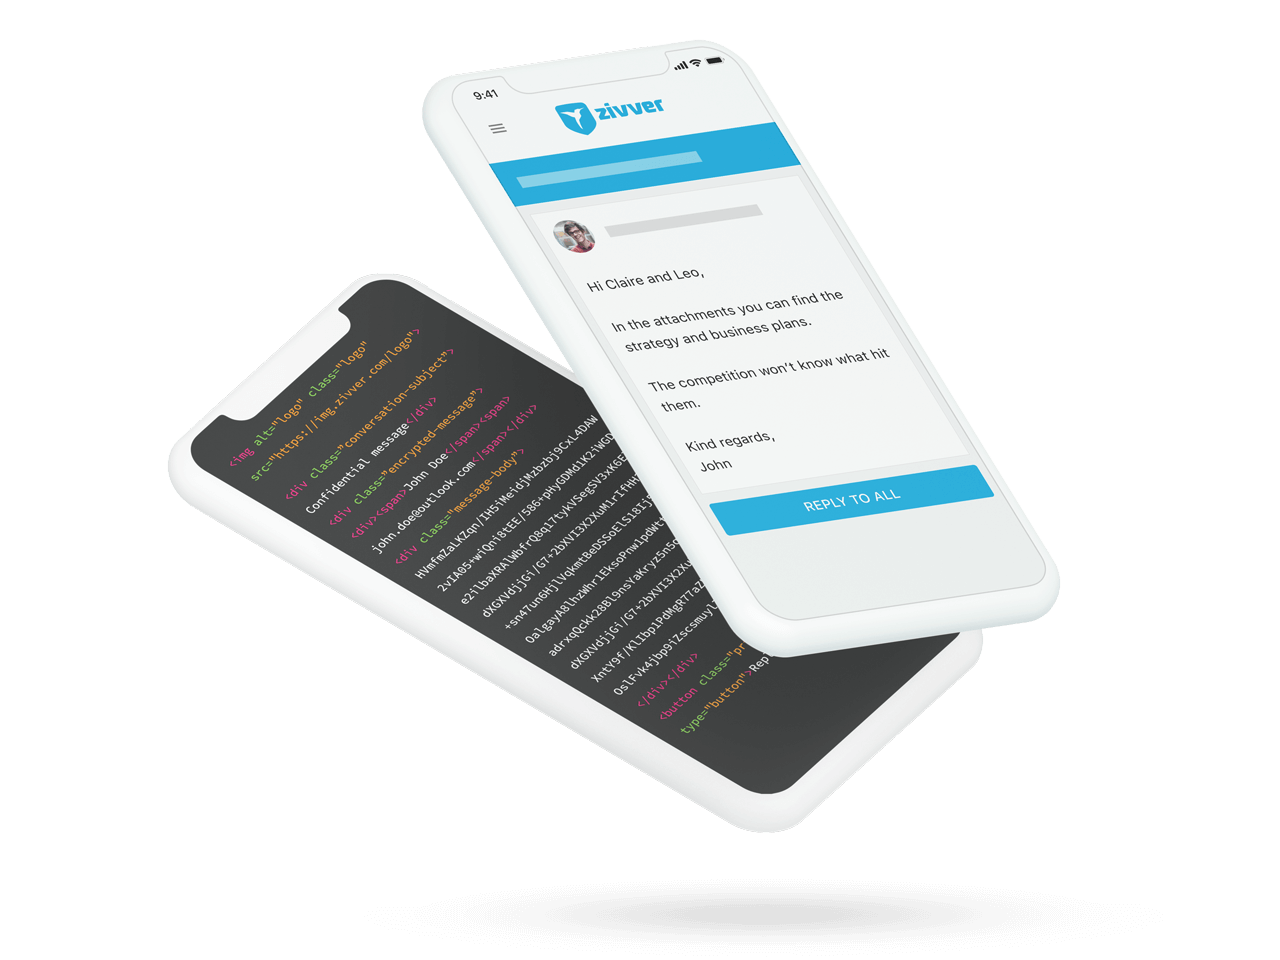 Protect your messages against hackers with our strong encryption and privacy by design